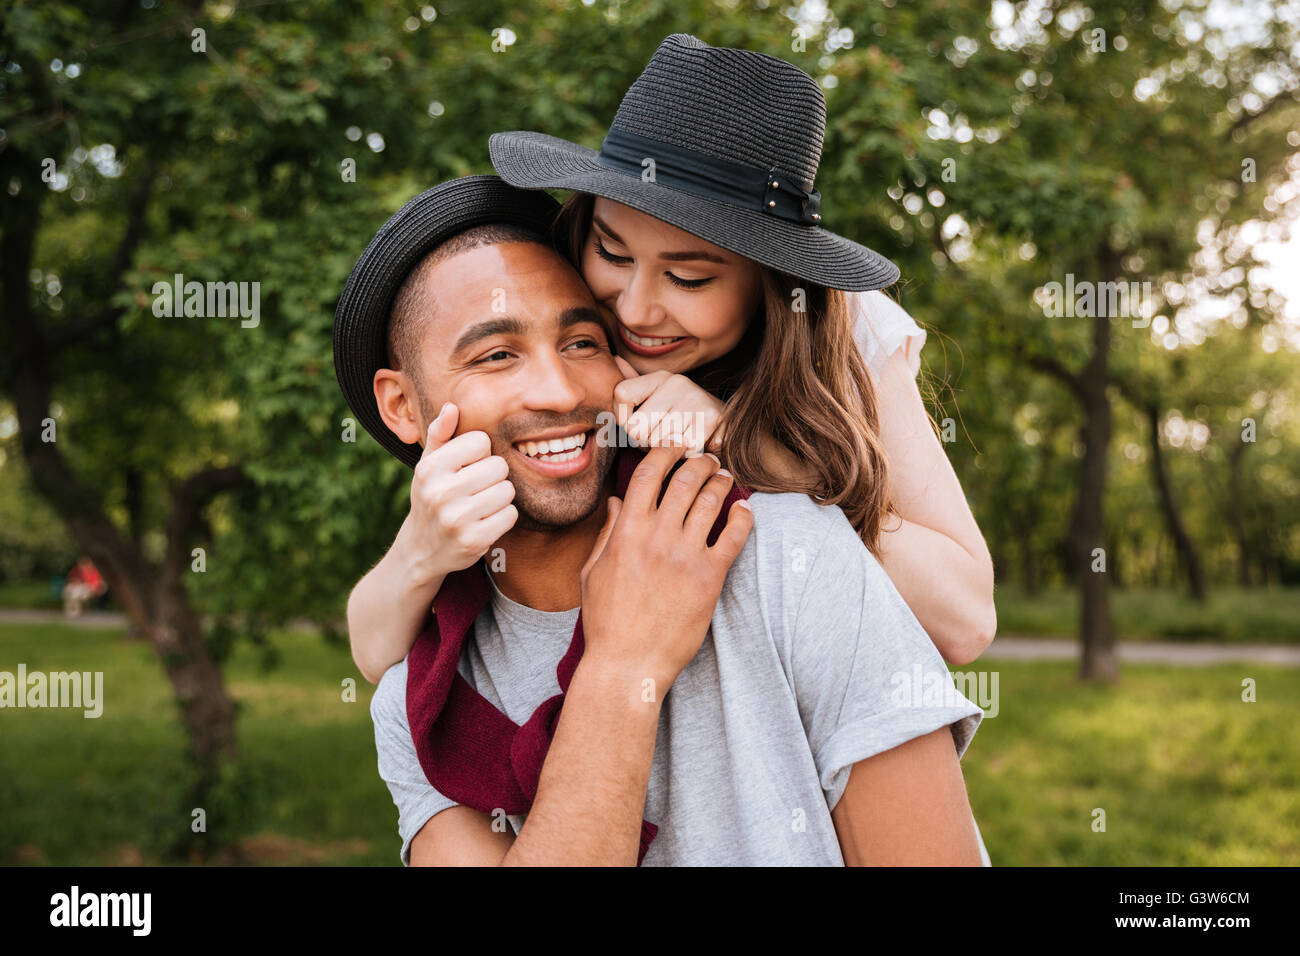 Smiling beautiful young couple in love having fun in park - Stock Image